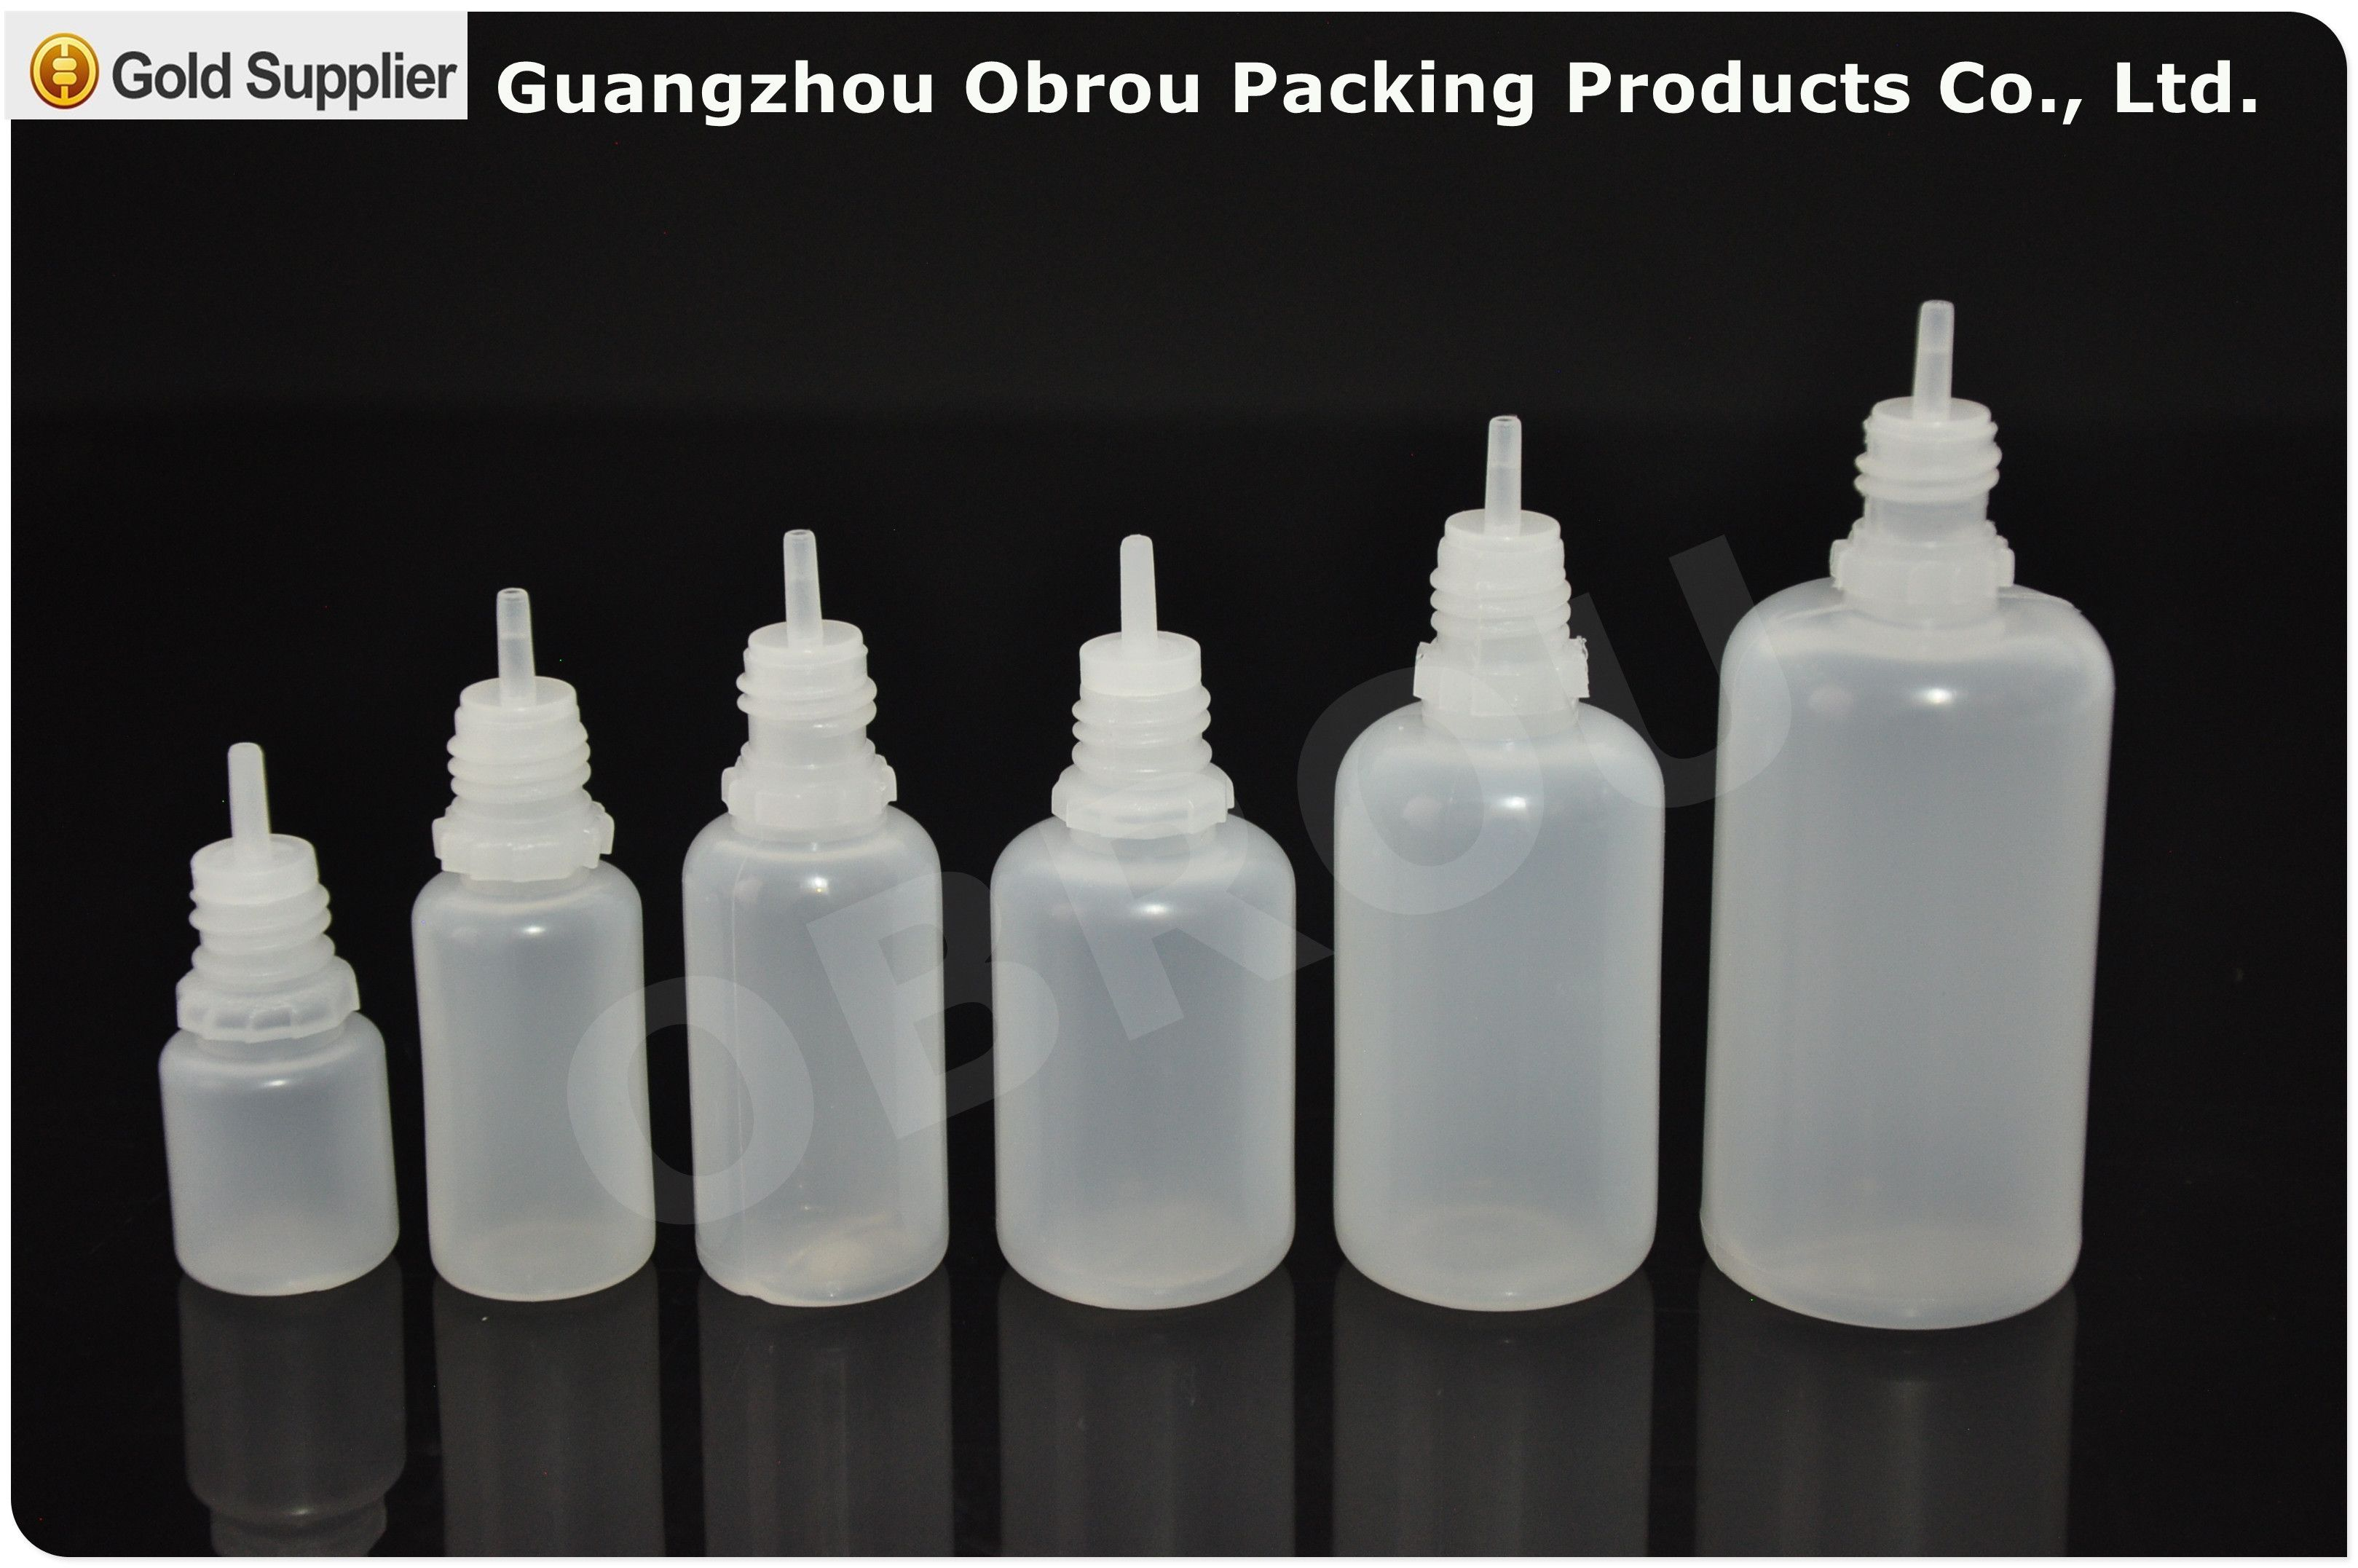 Free Sample Obrou Childproof 10ml 15ml 30ml Clear Pe E Liquid Bottle Pe Plastic Dropper Bottle For Hdpe Ldpe Dropper Bottles Bottle Childproofing